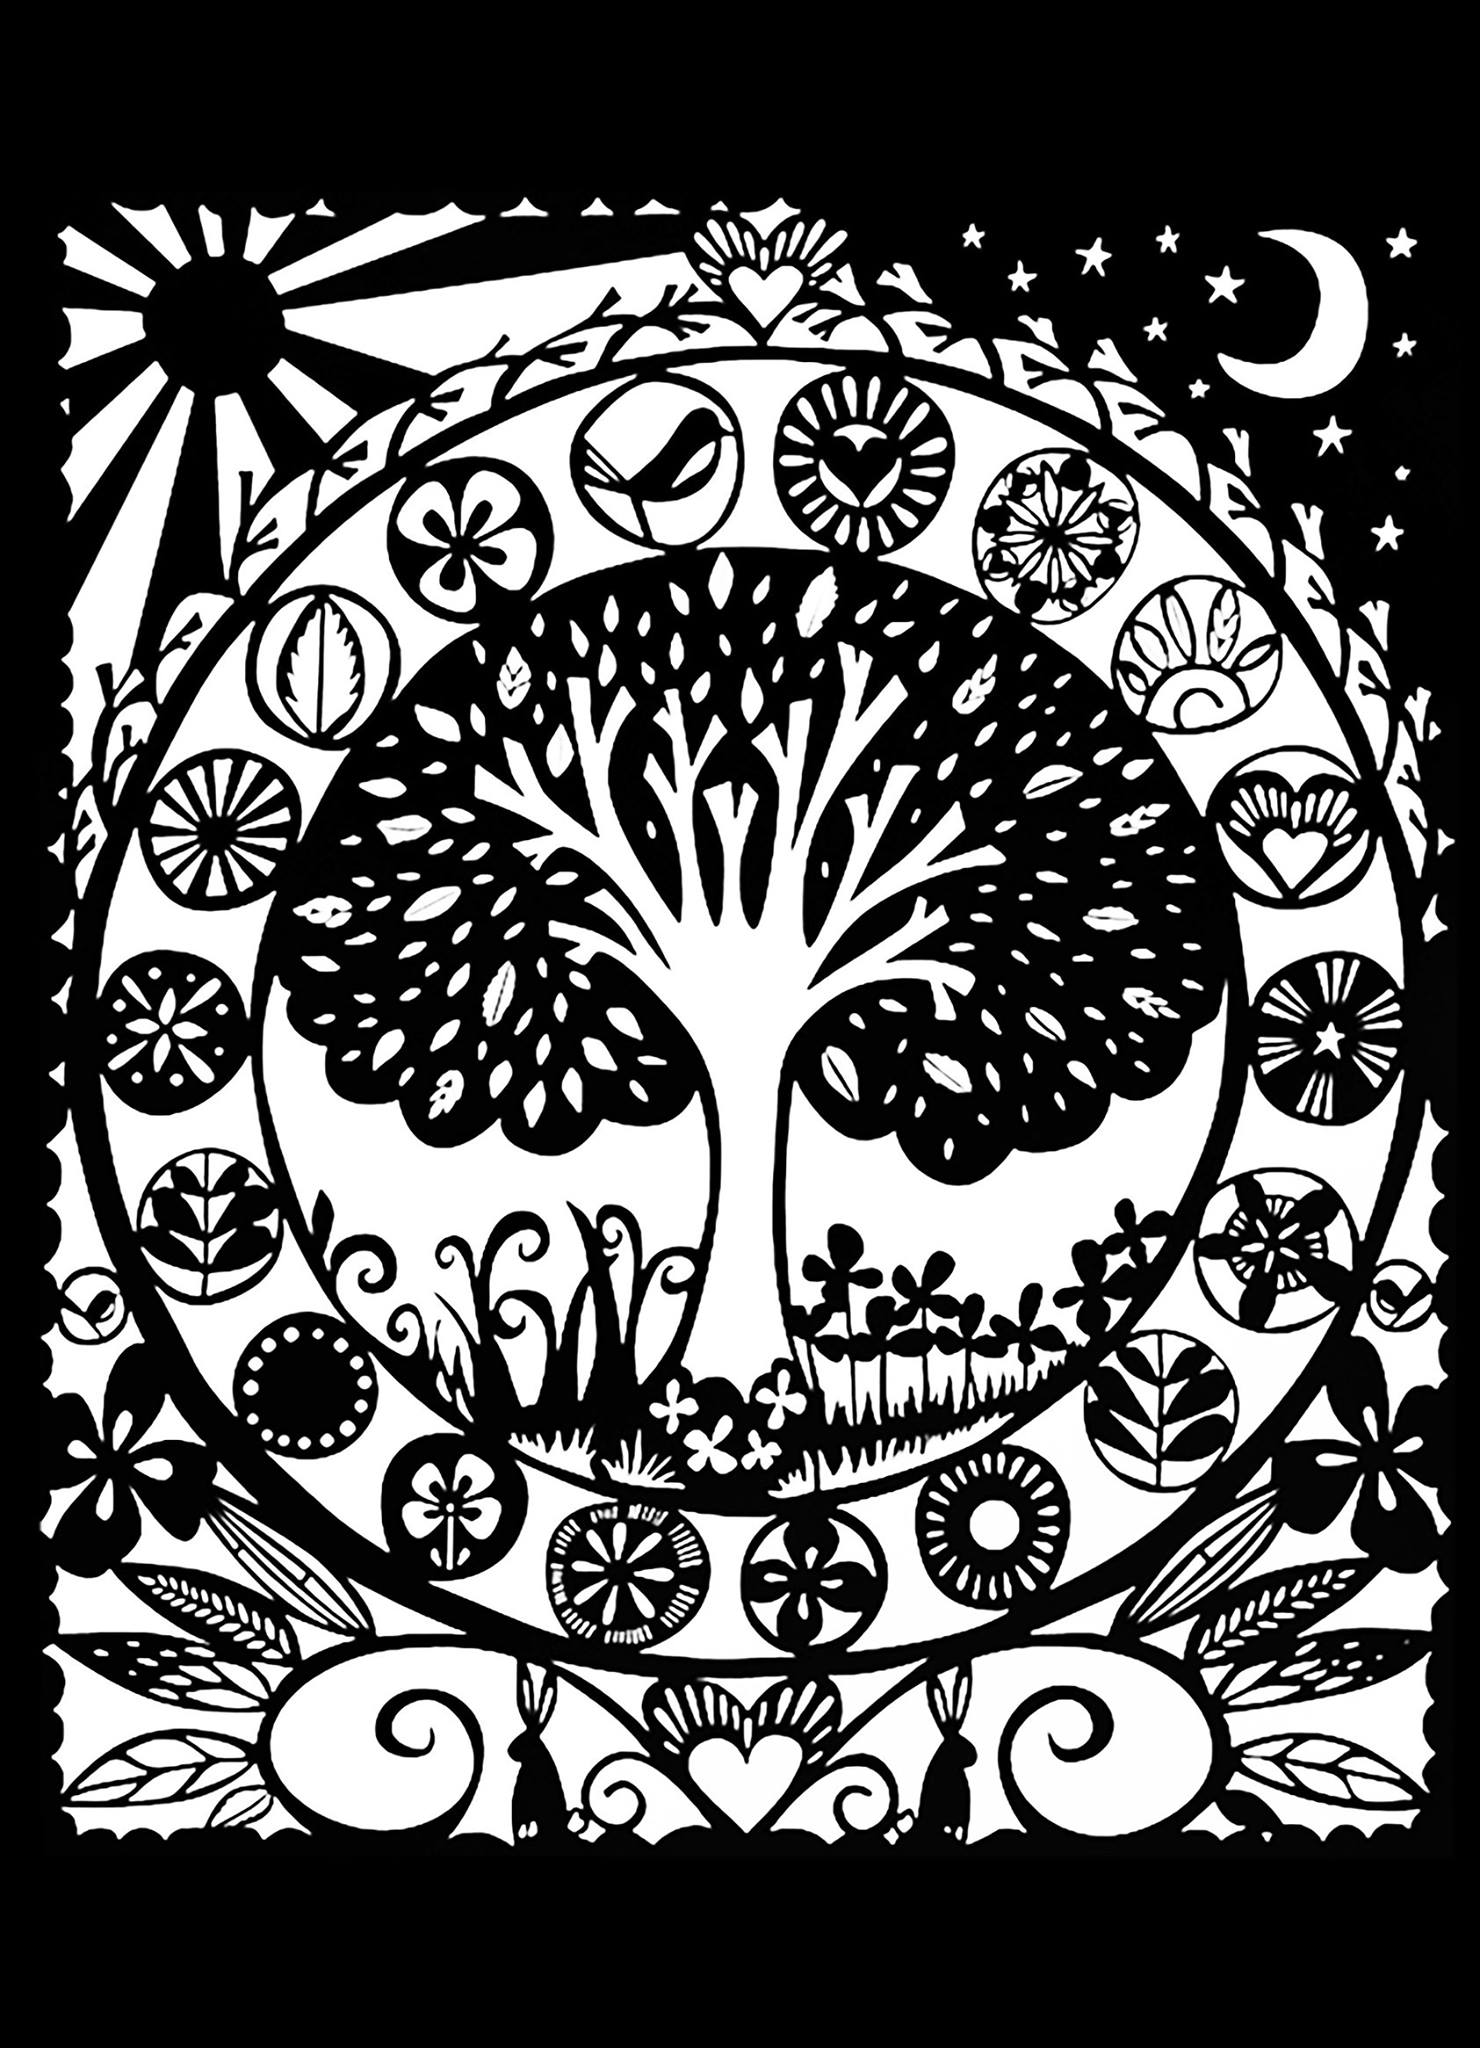 Tree Black White Flowers Adult Coloring Pages Page 2